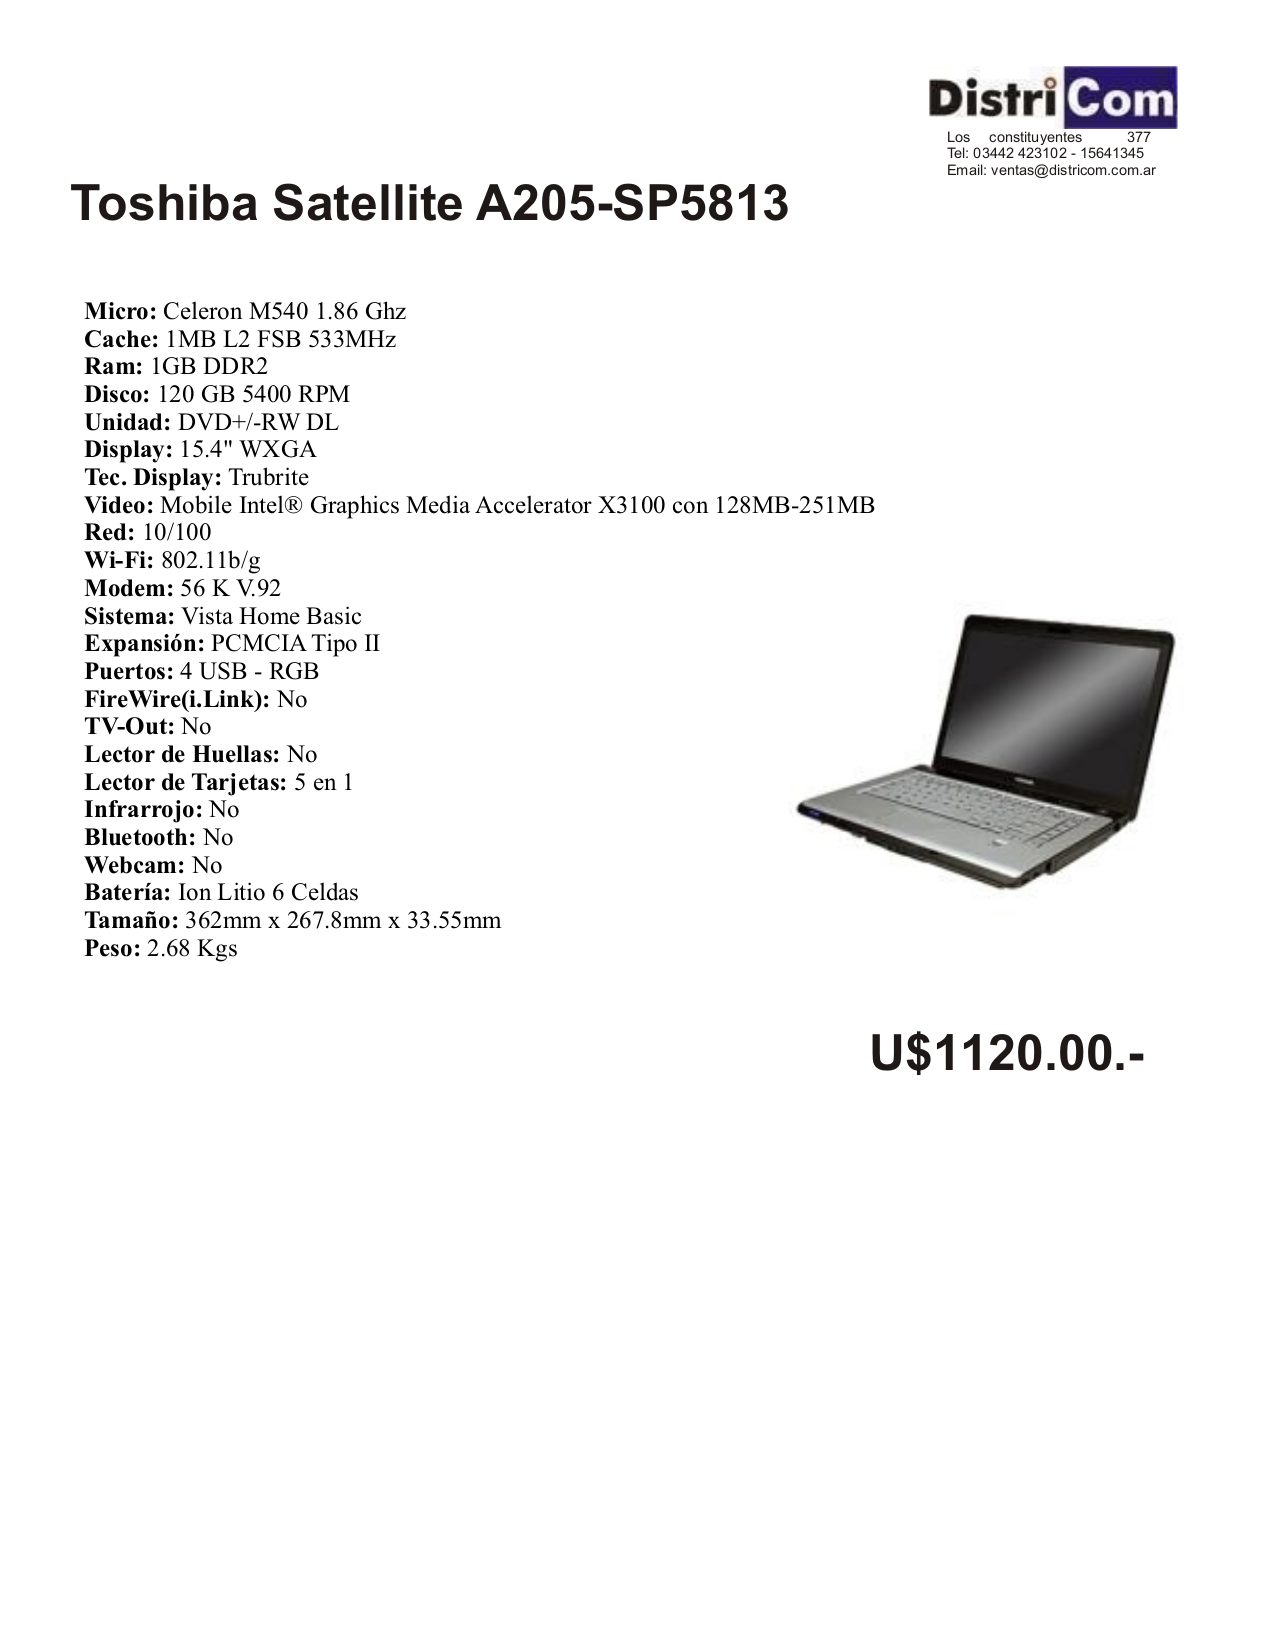 download free pdf for toshiba satellite a205 sp5813 laptop manual rh umlib com toshiba a205 manual toshiba a205 manual